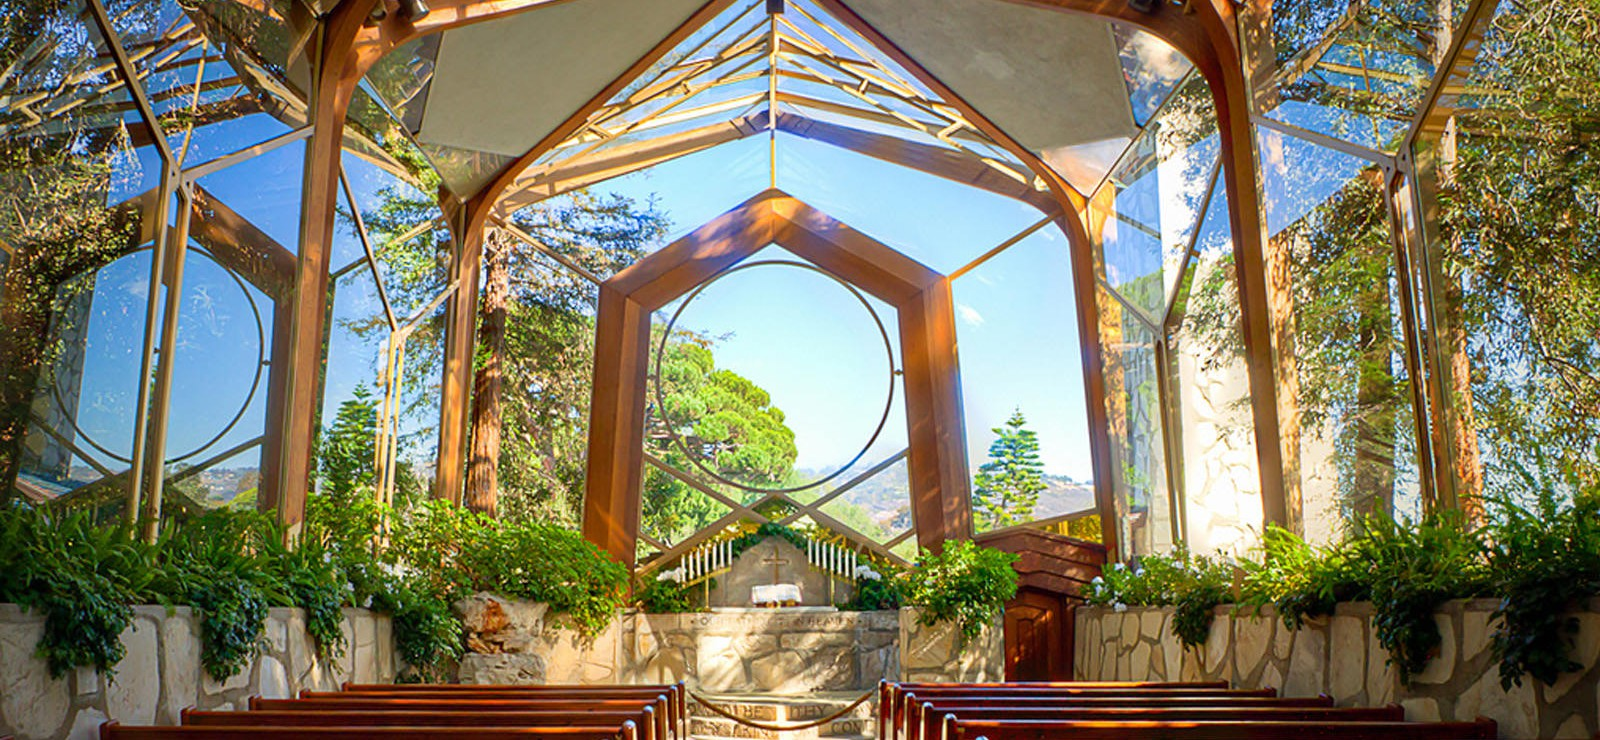 A photo of the interior of the Chapel